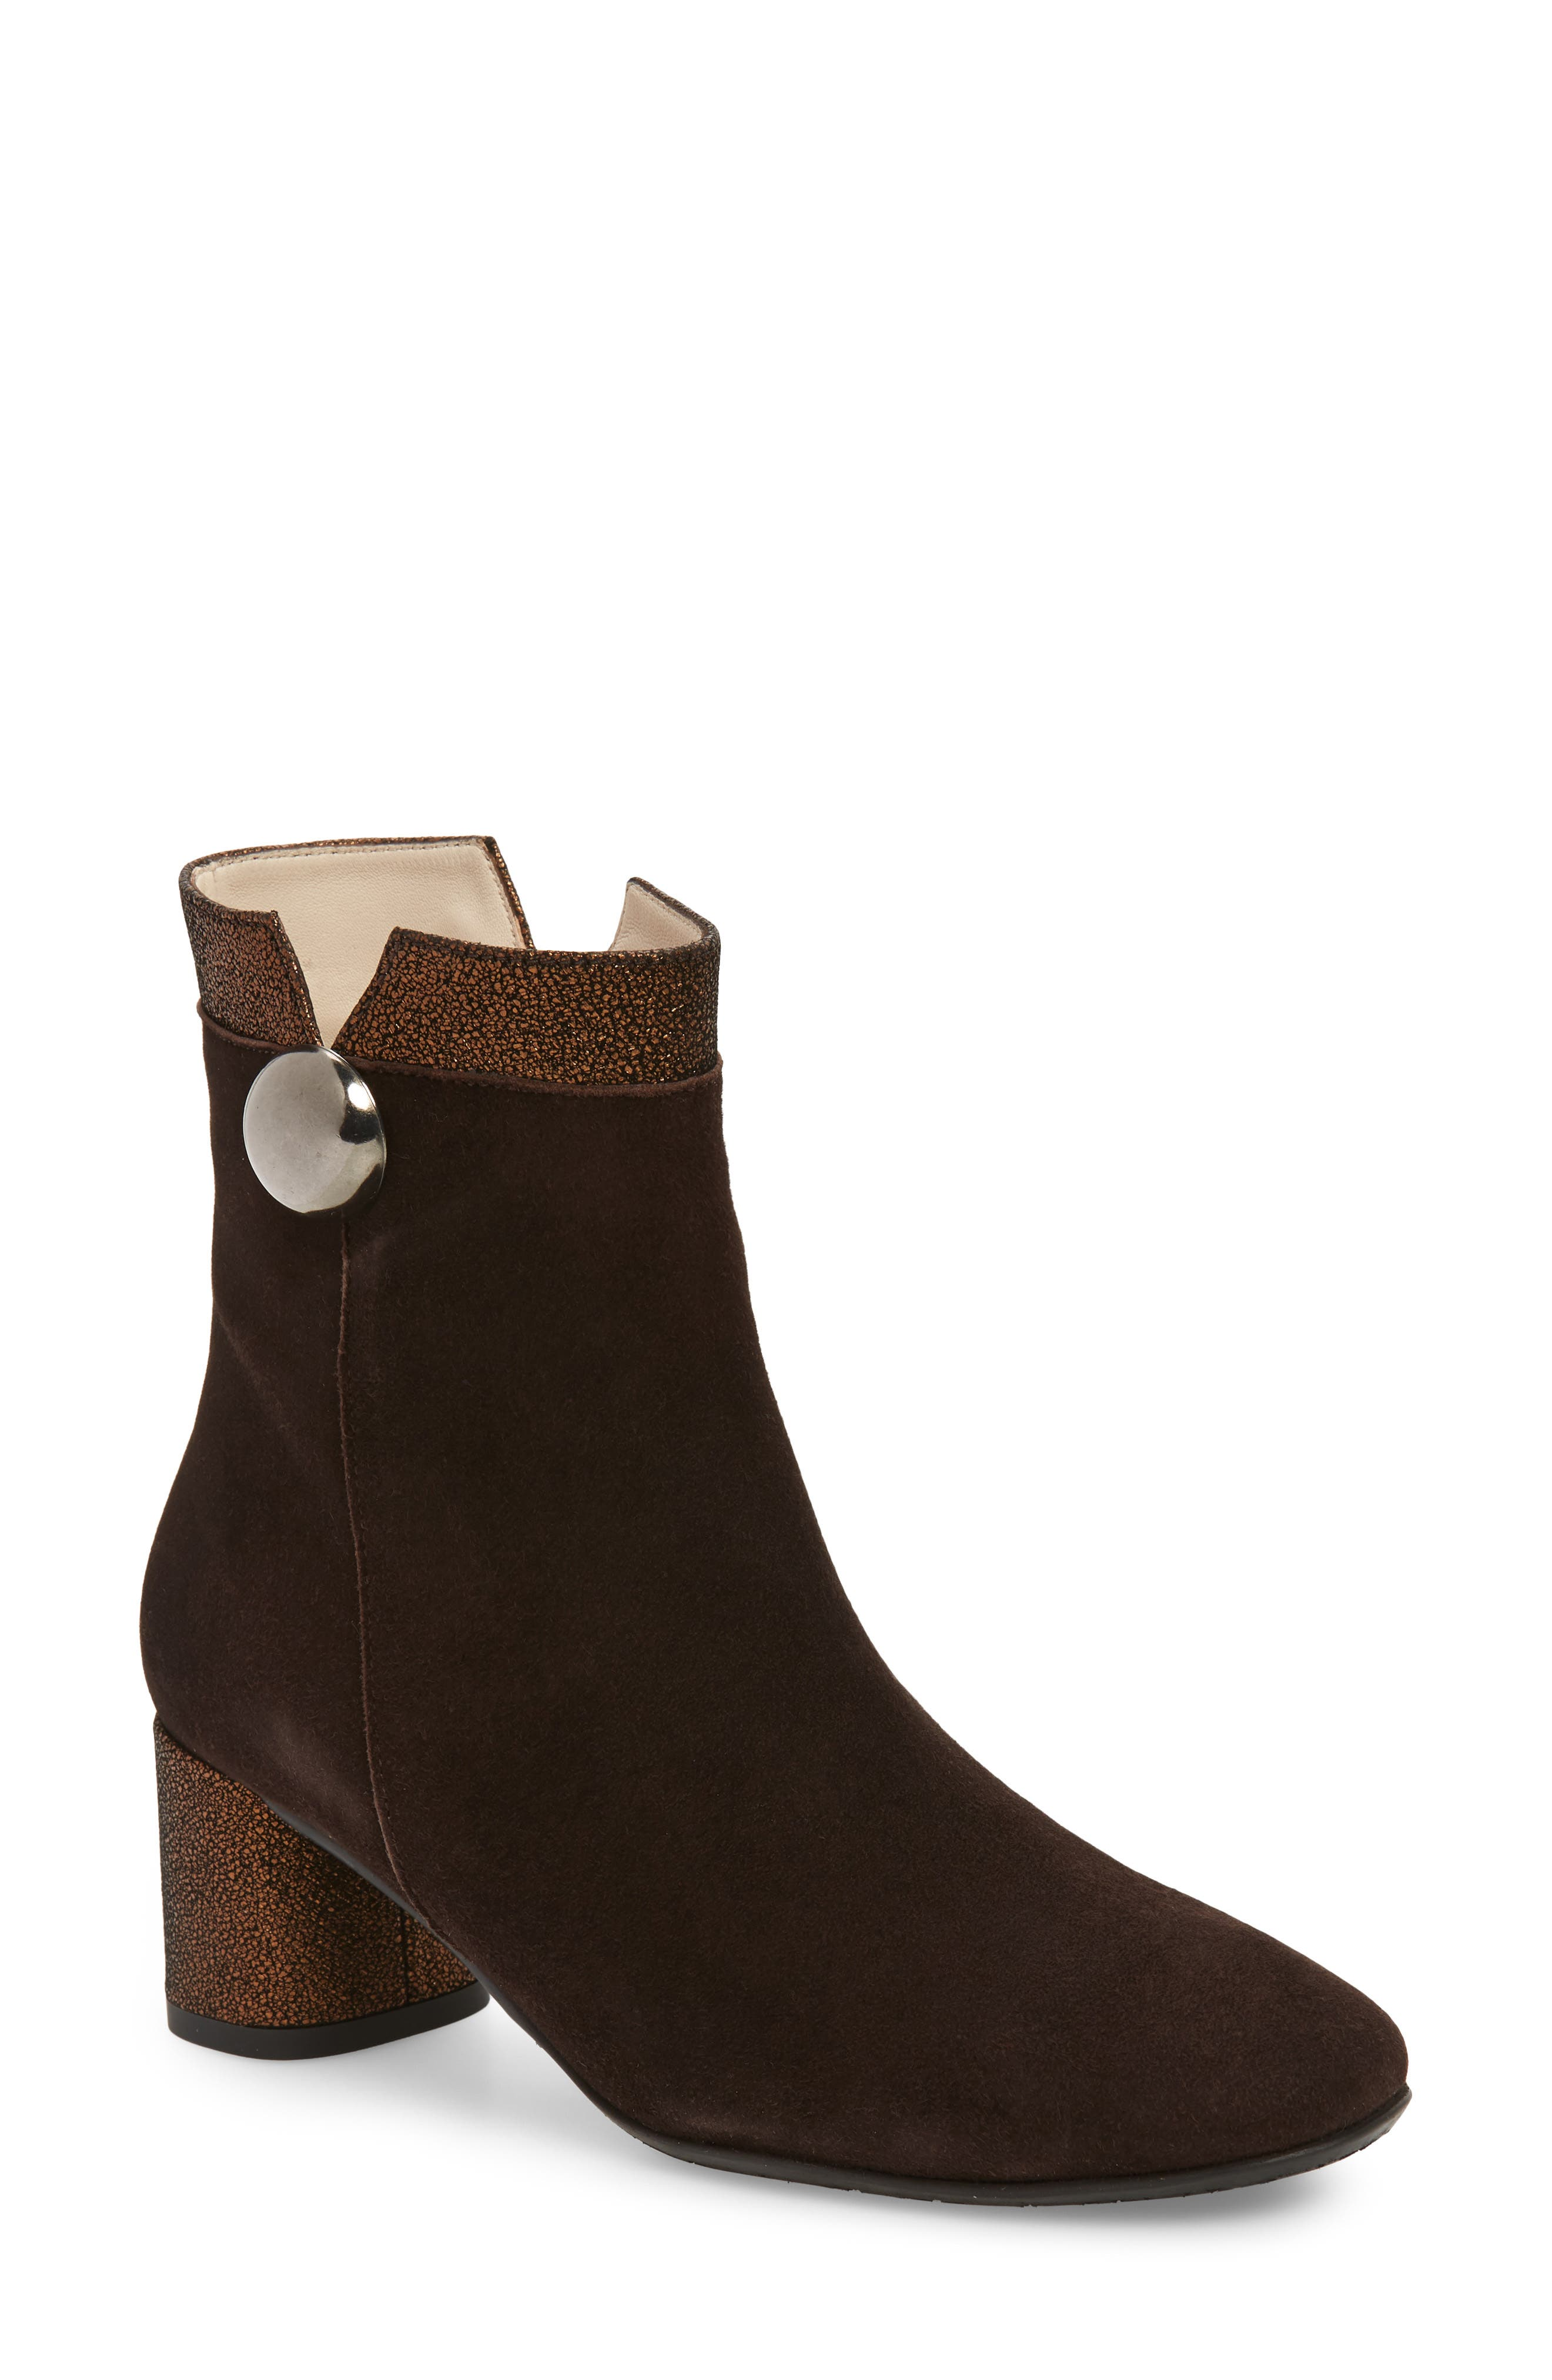 AMALFI BY RANGONI Rosato Bootie in Brown Suede